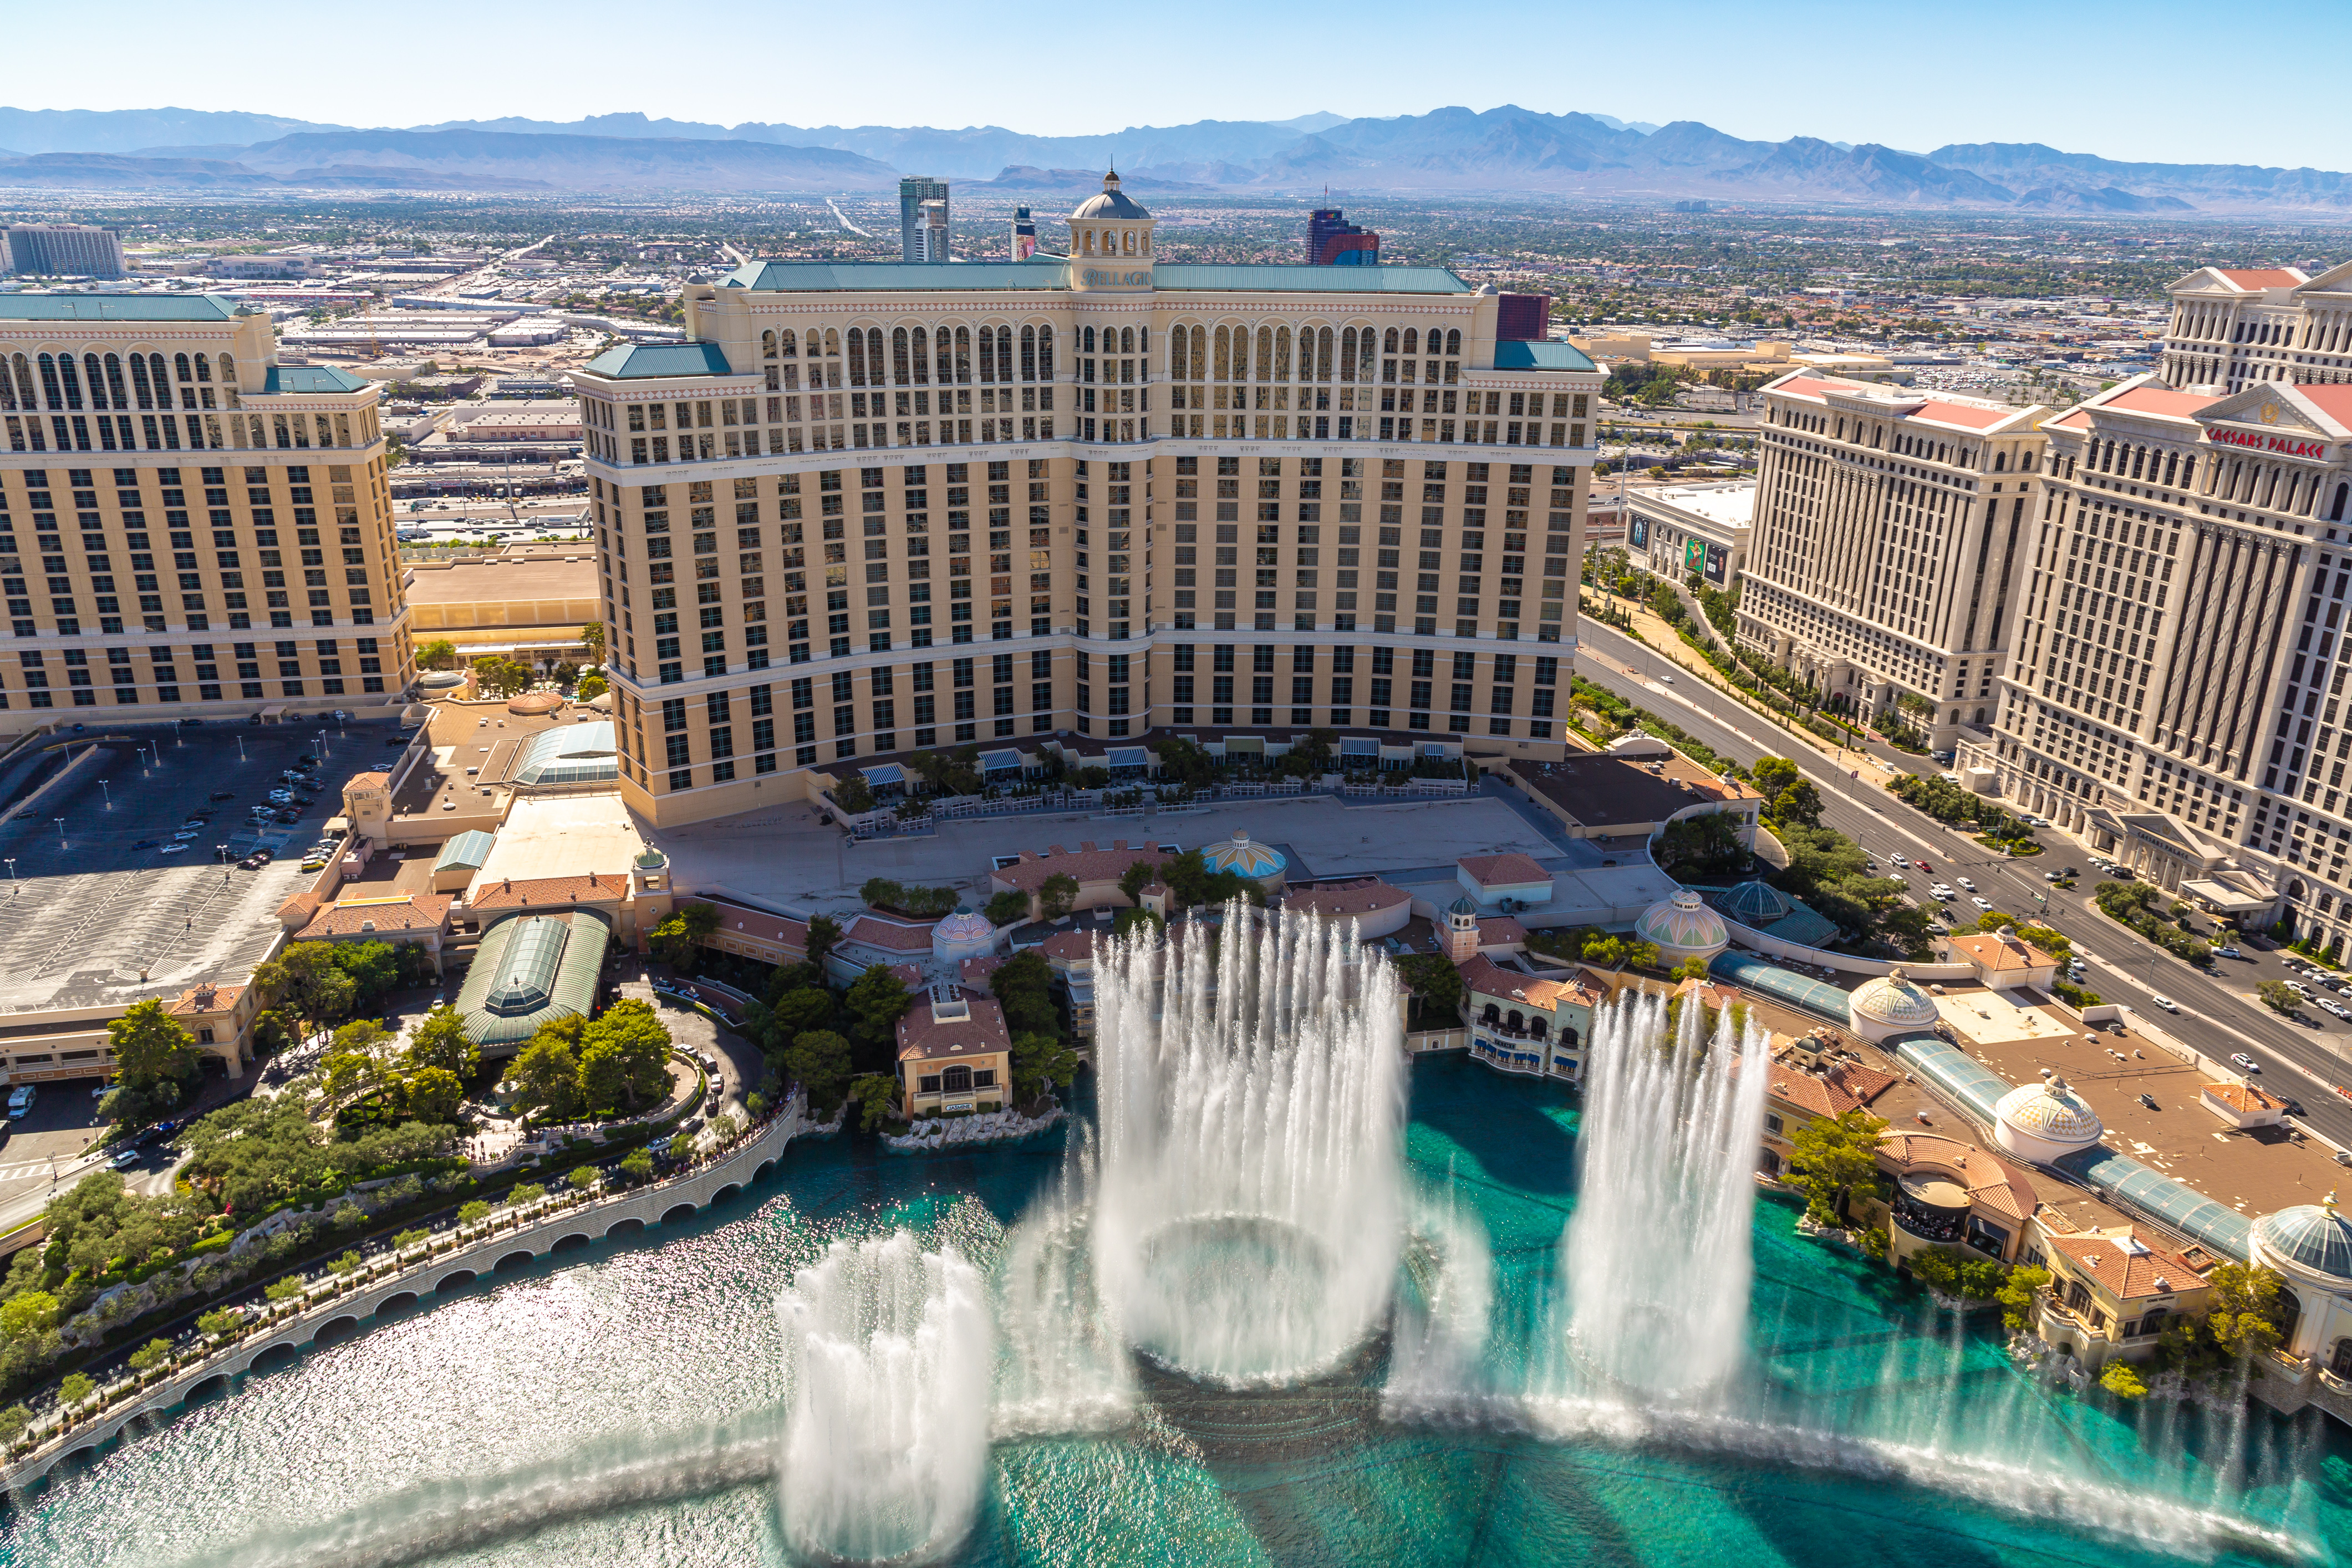 An overhead view of a hotel with fountains in front